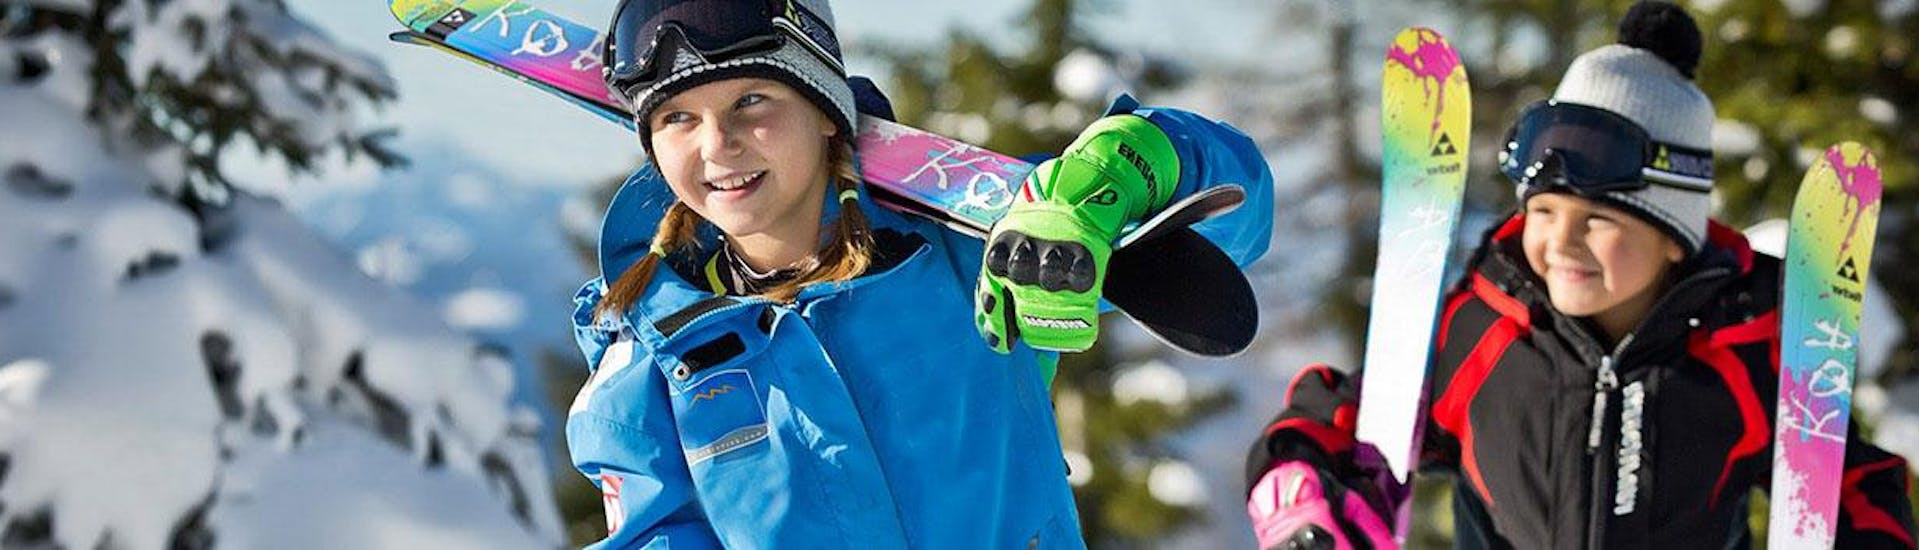 A young girl and a young boy are carrying their skis to get ready for their ski lessons with the ski school Schneesportschule Black Forest Magic in the ski resort of Feldberg.